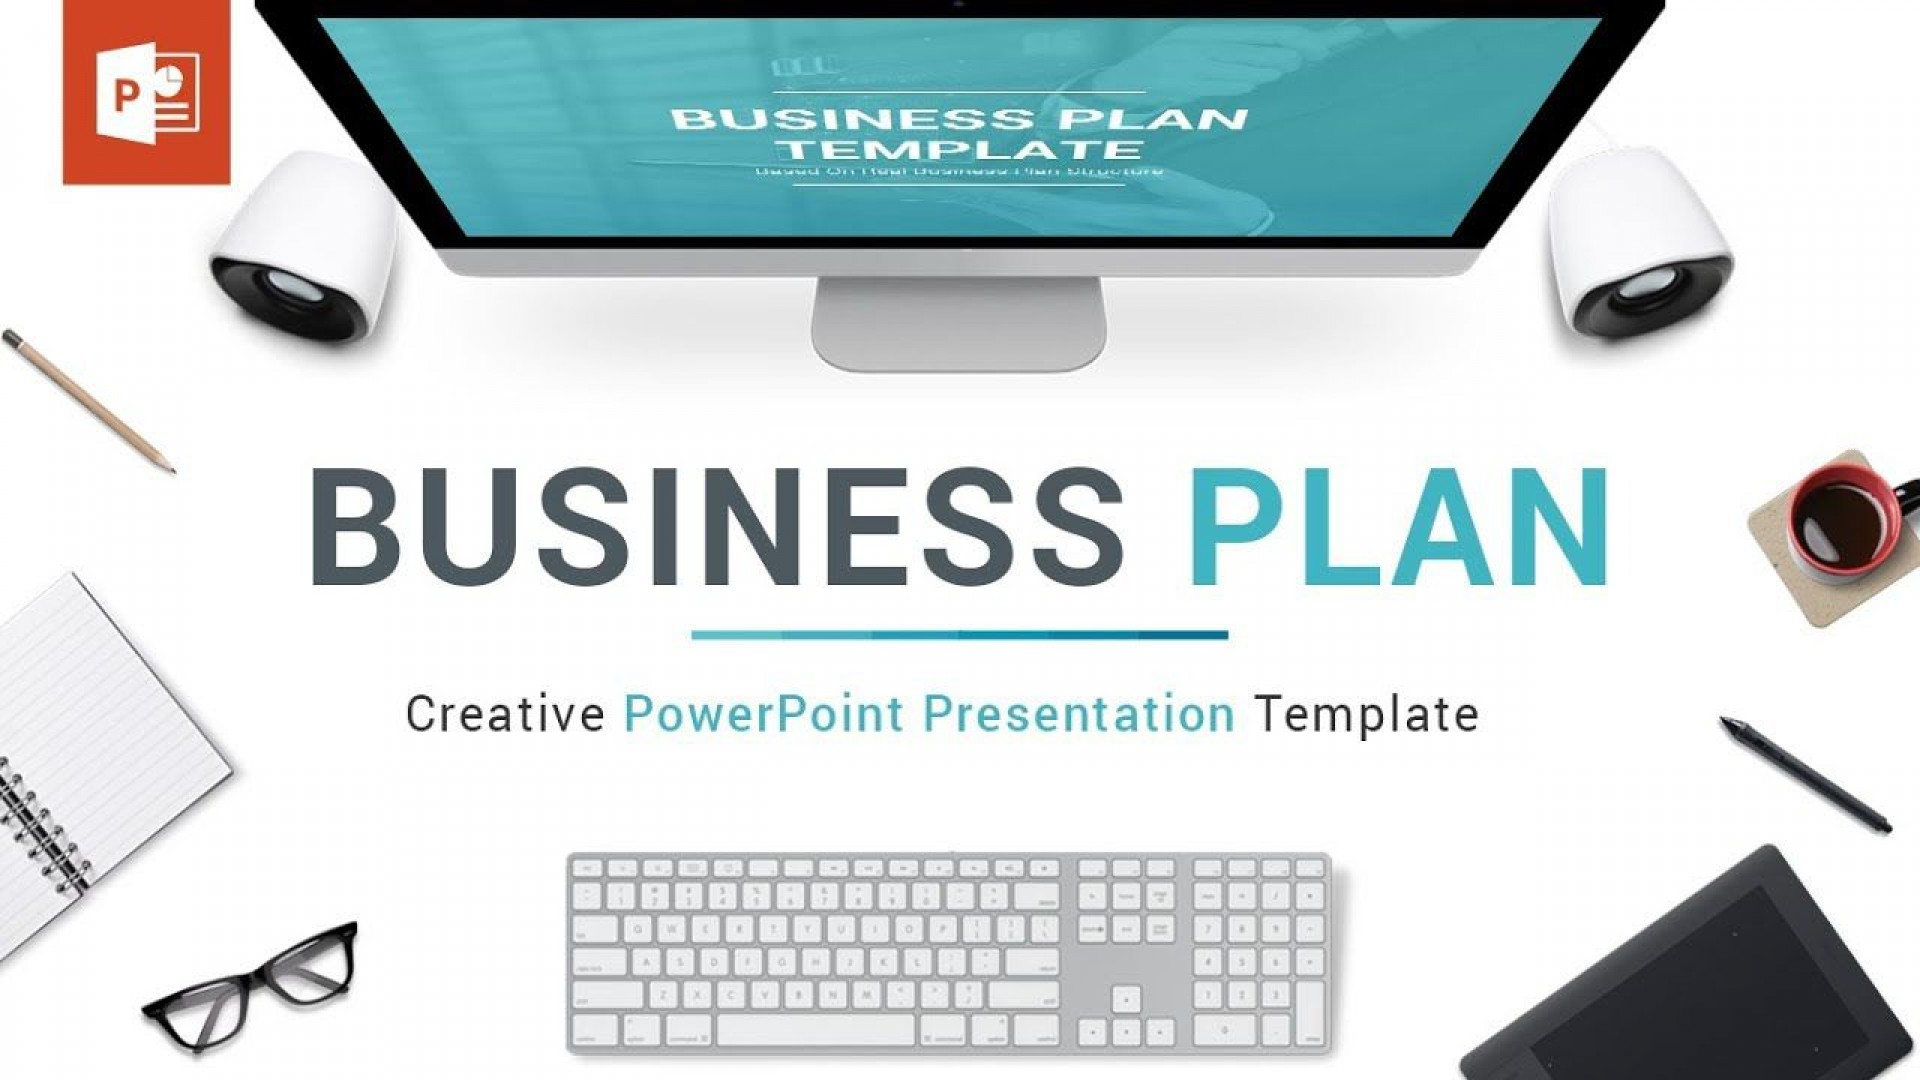 004 Imposing Free Busines Plan Template Ppt Highest Quality  2020 Download Startup 30 60 901920